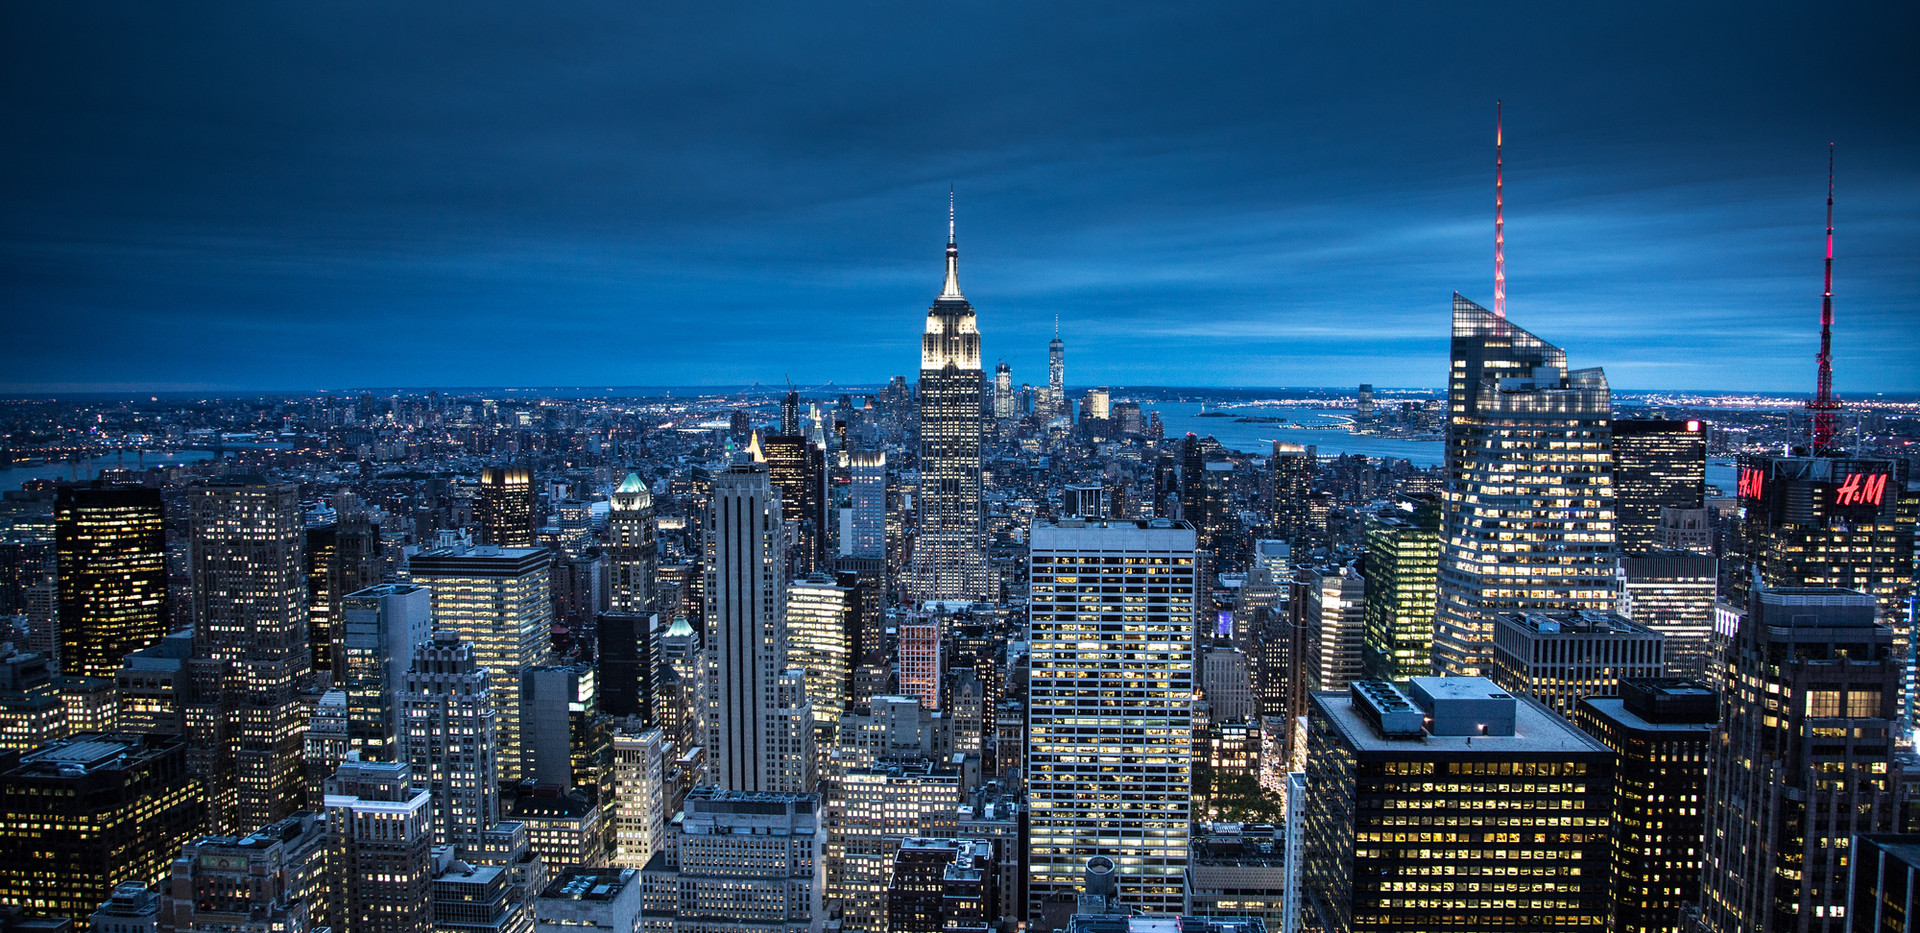 The New York City in the night